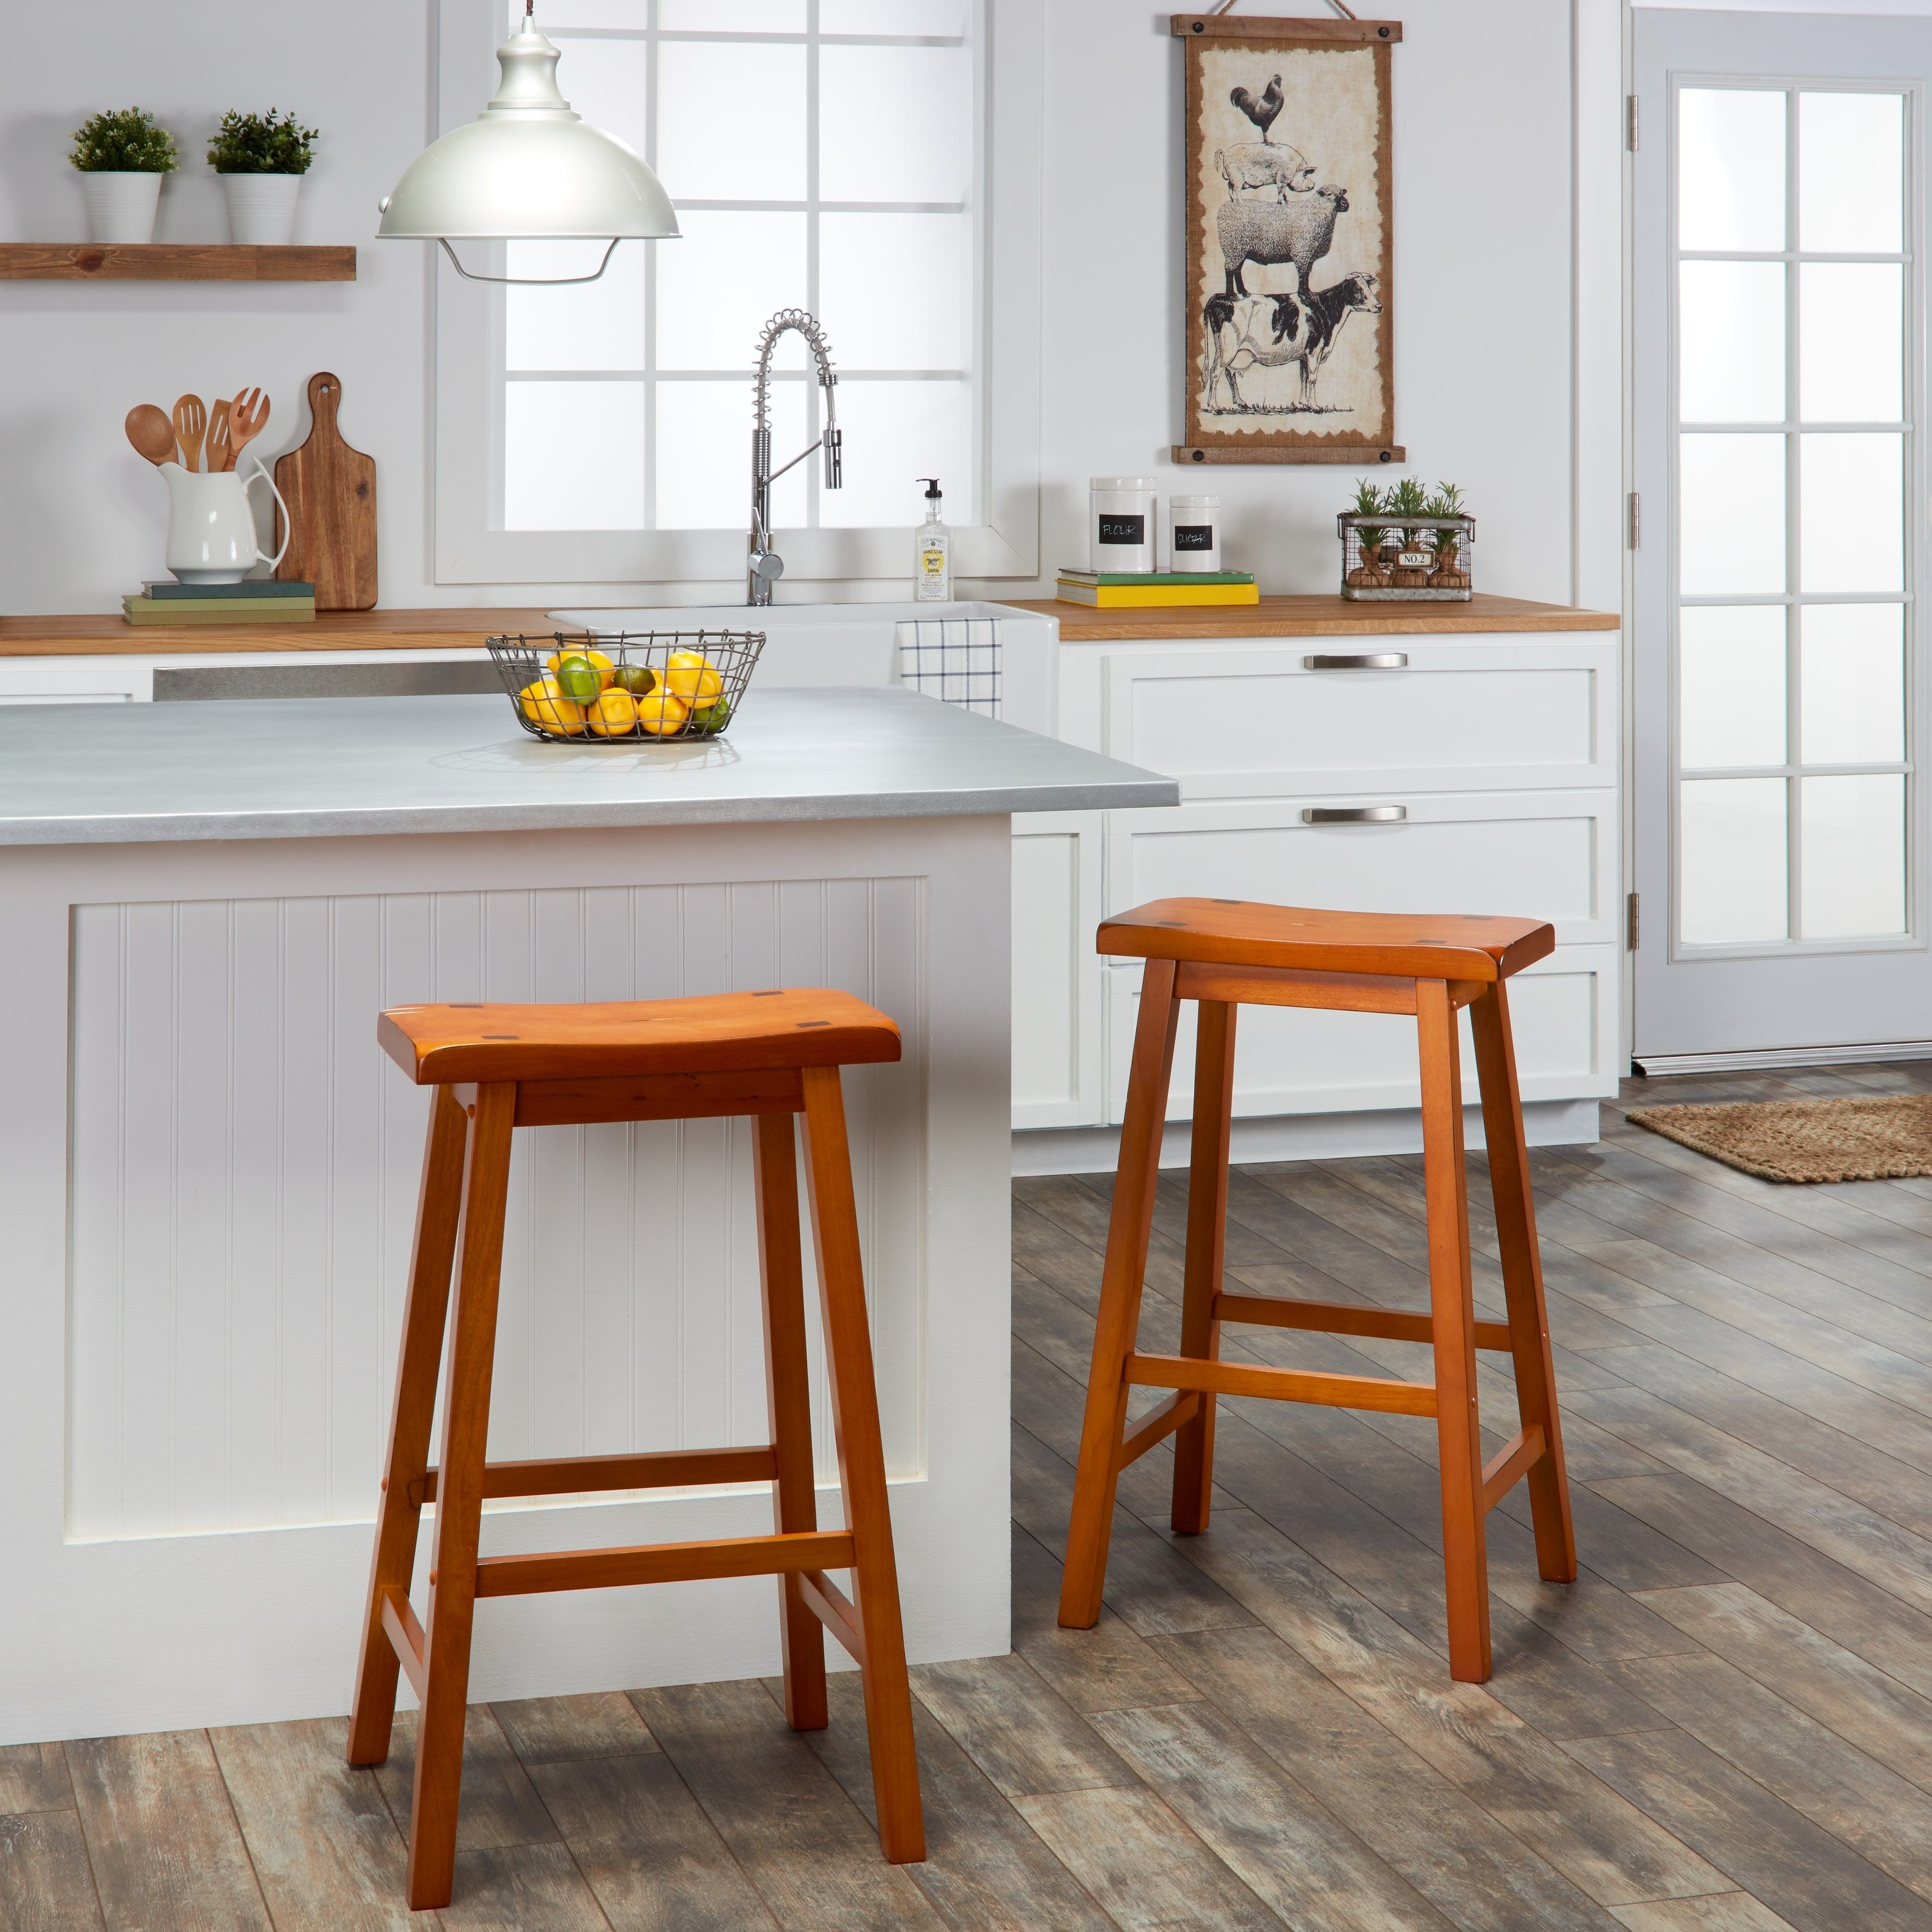 Overstock Com Online Shopping Bedding Furniture Electronics Jewelry Clothing More Backless Stools Stools For Kitchen Island Counter Height Stools